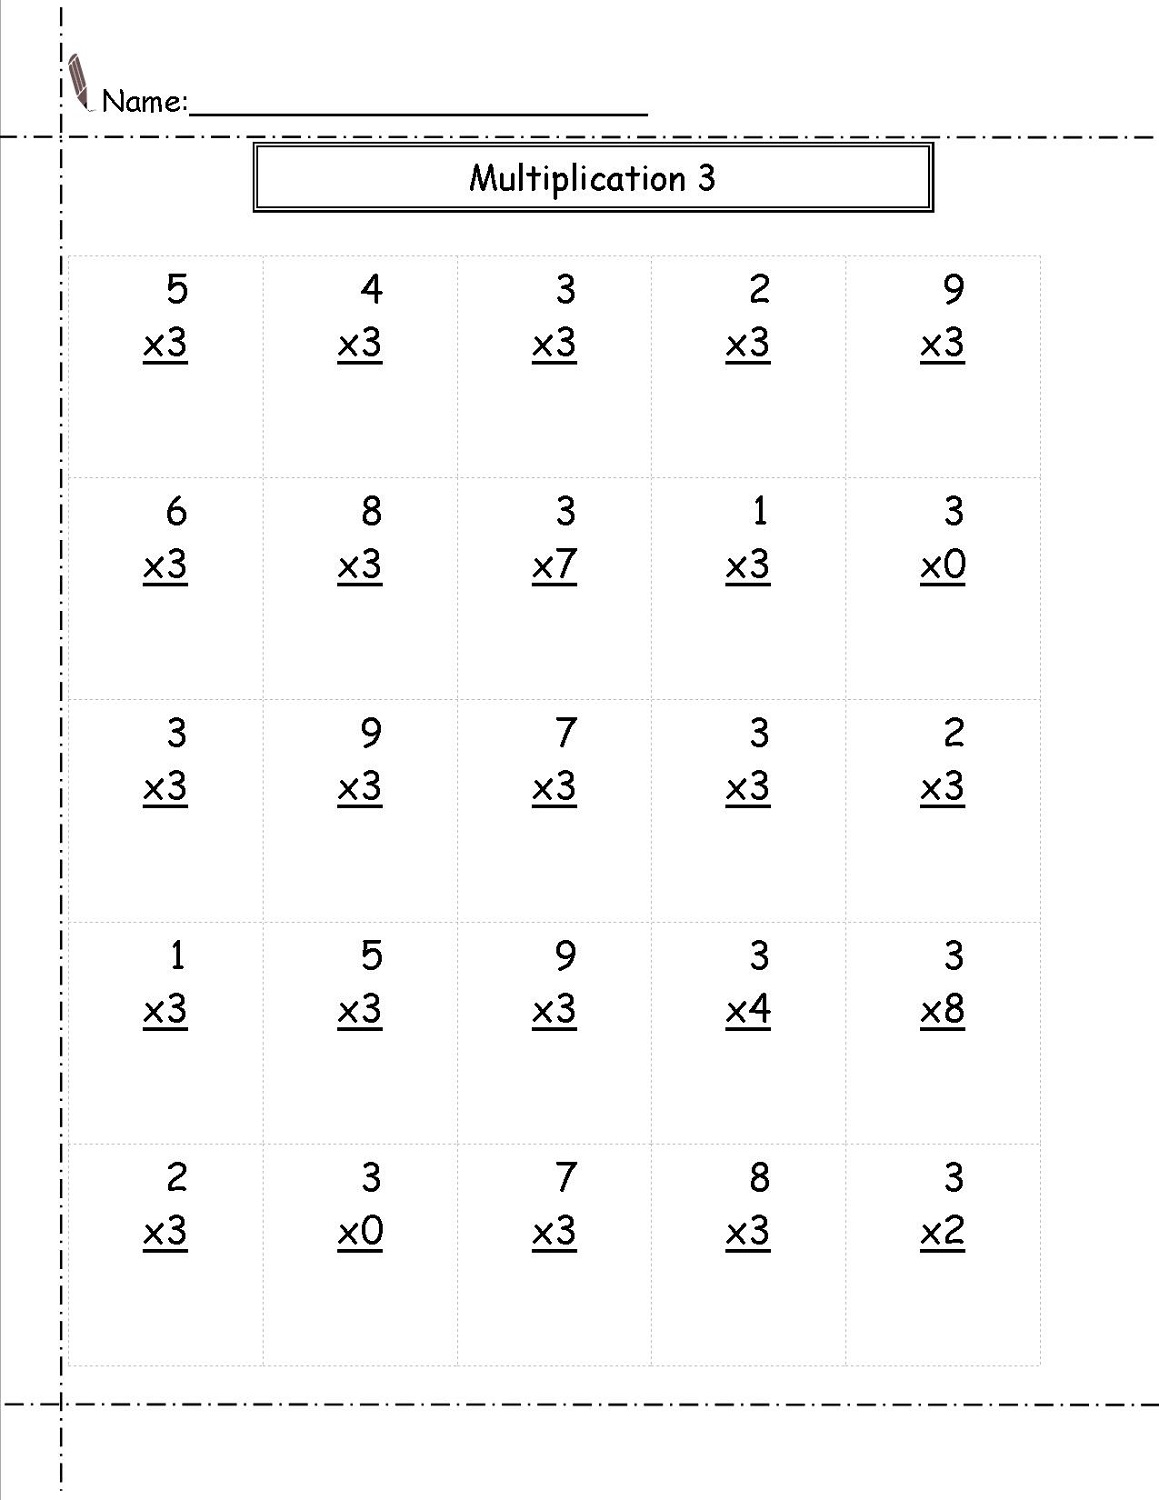 New 3 times table worksheets to print activity shelter for Table multiplication 3